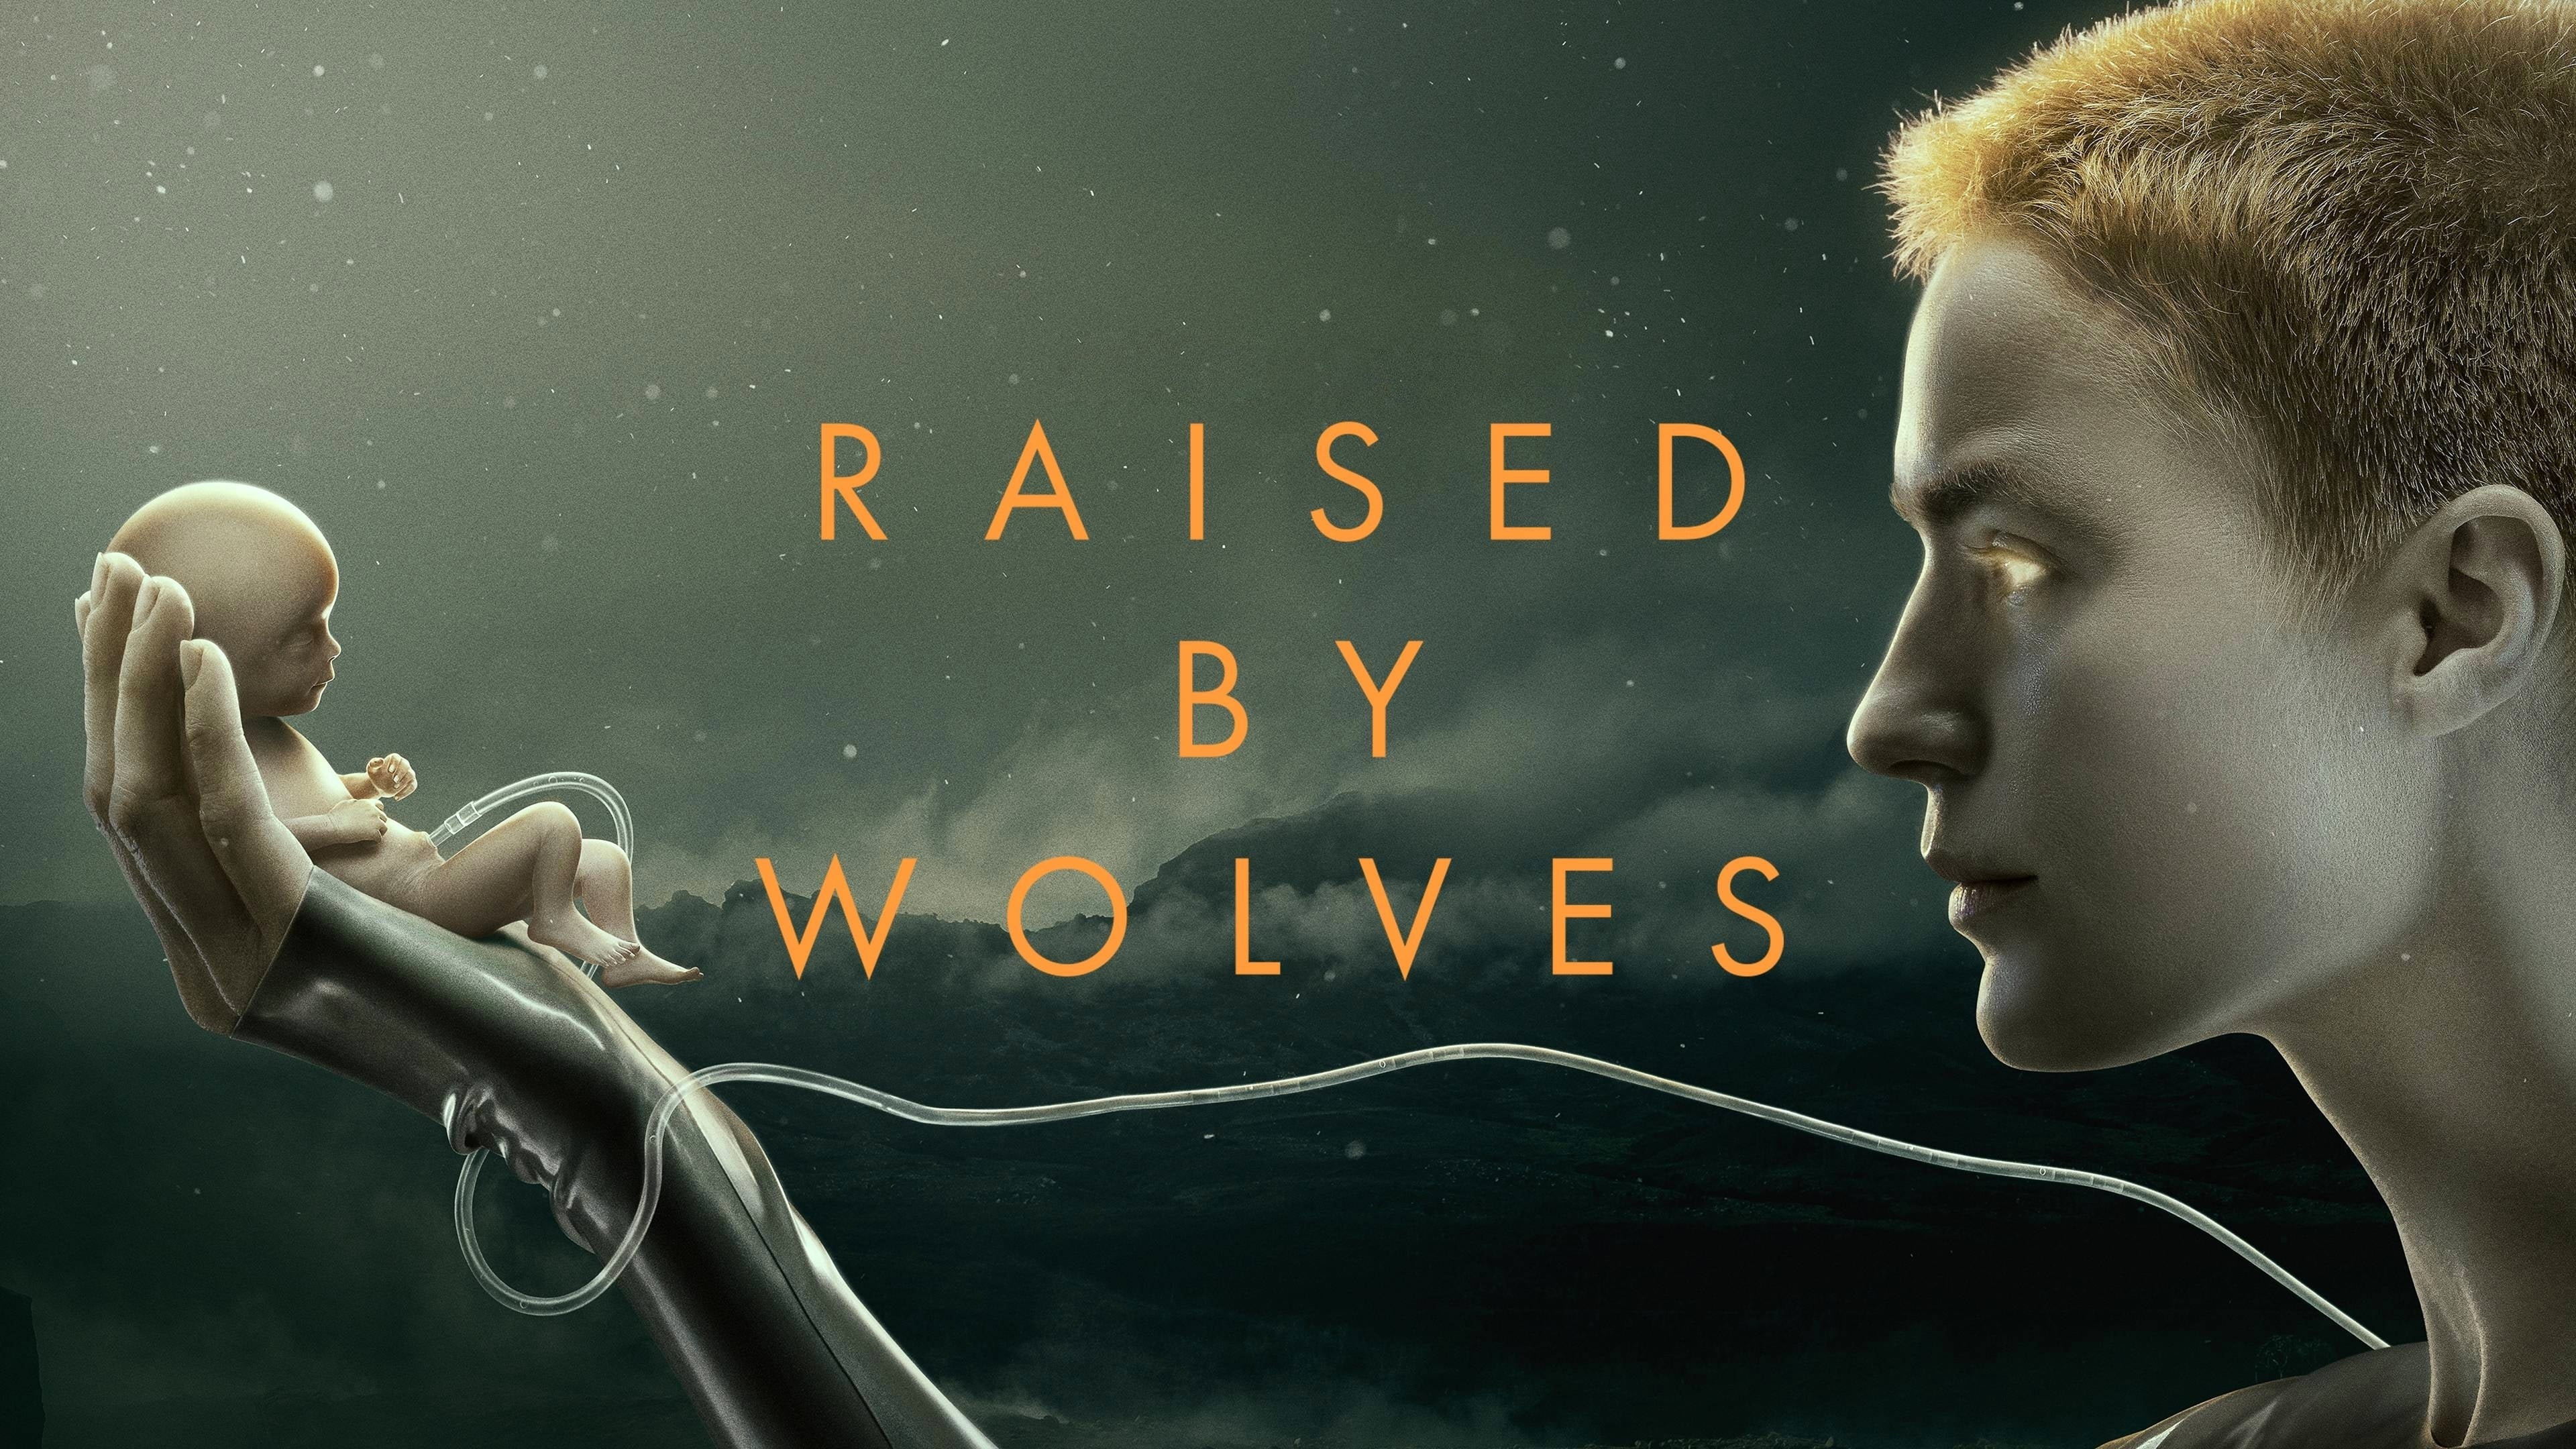 Raised by Wolves (2020) renewed with a second season